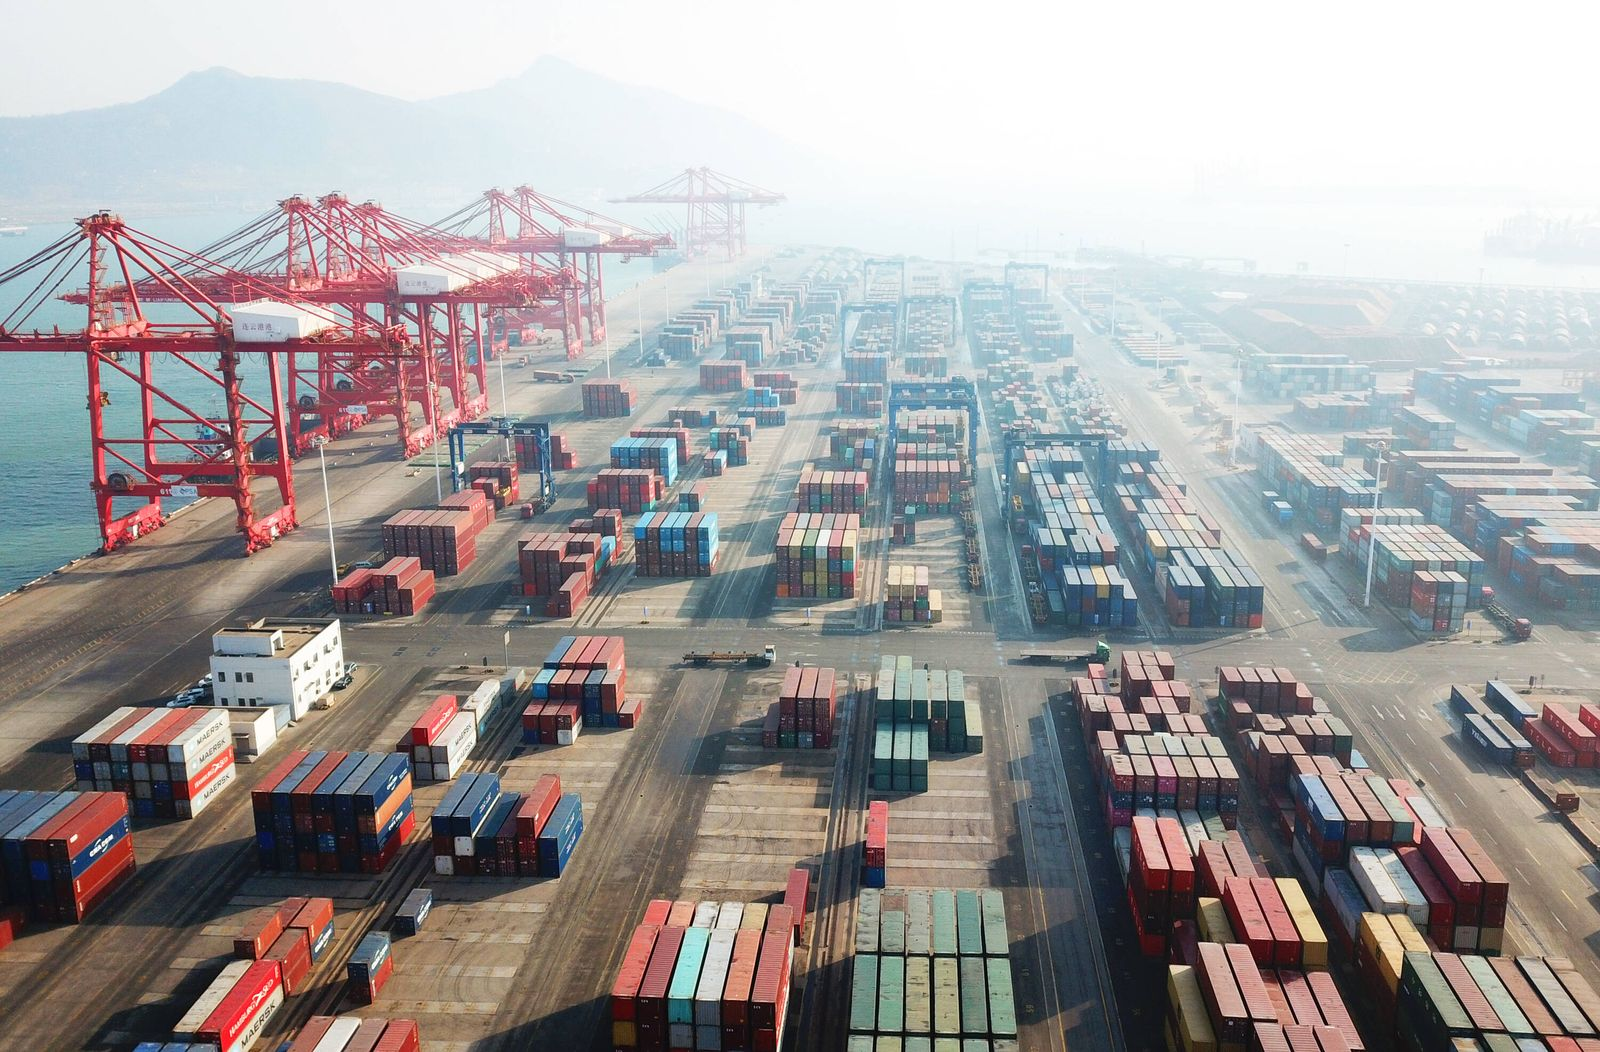 LIANYUNGANG, CHINA - JANUARY 14: Aerial vew of shipping containers sitting stacked at Lianyungang port on January 14, 2